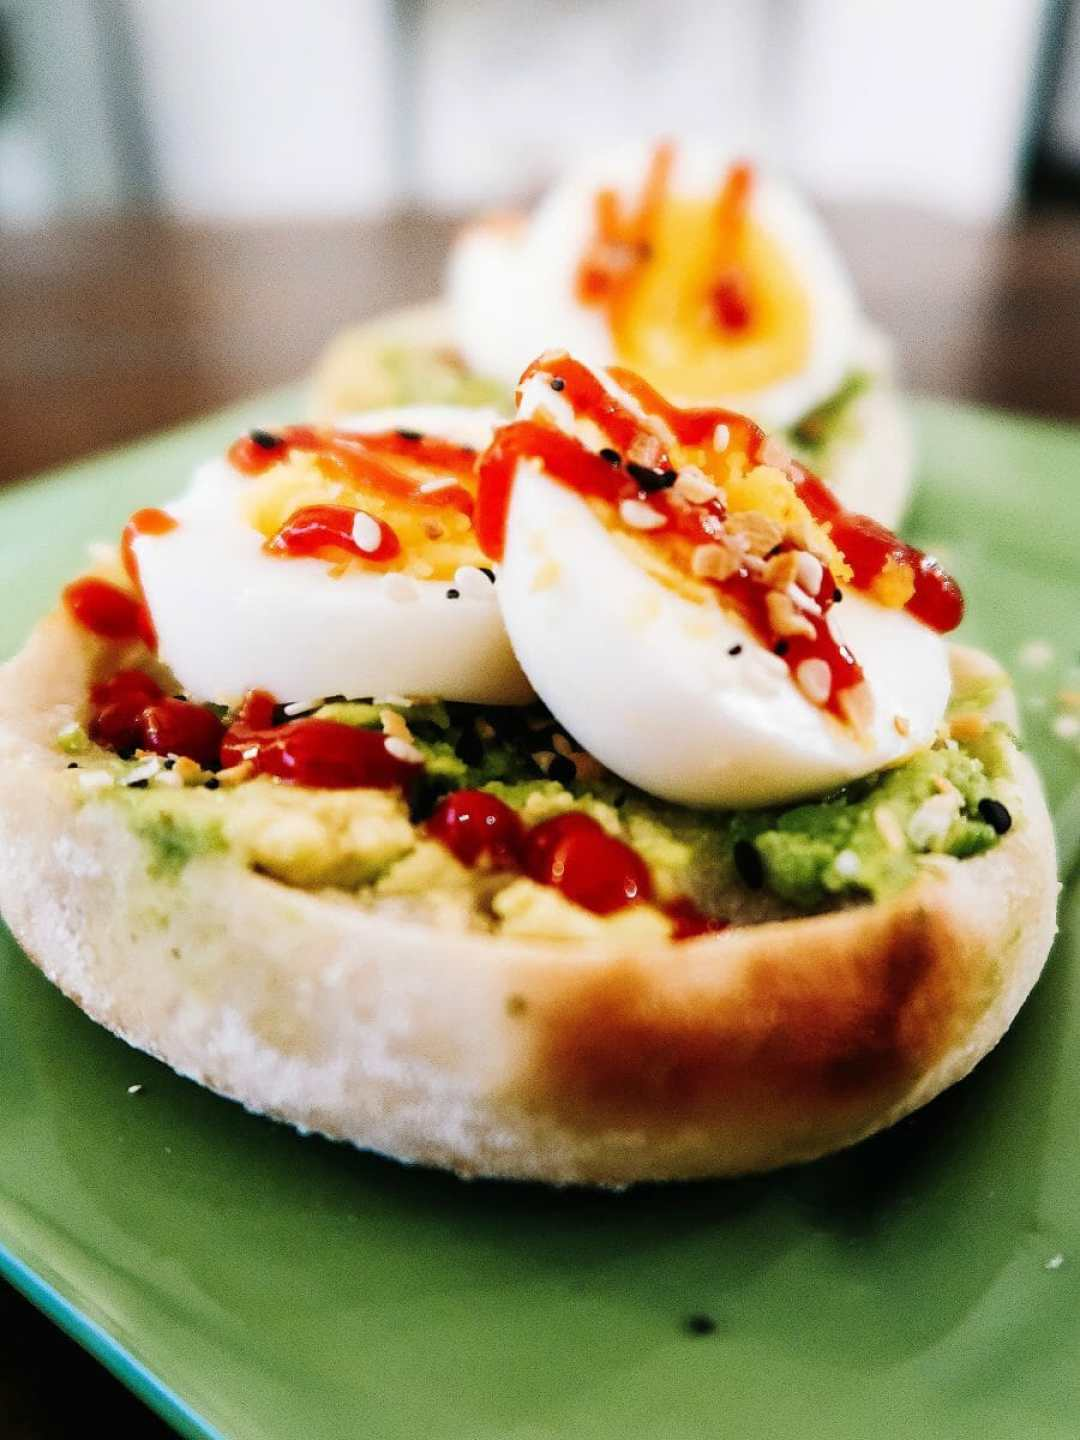 Avocado English Muffin with Hard-Boiled Eggs (Happy Egg)